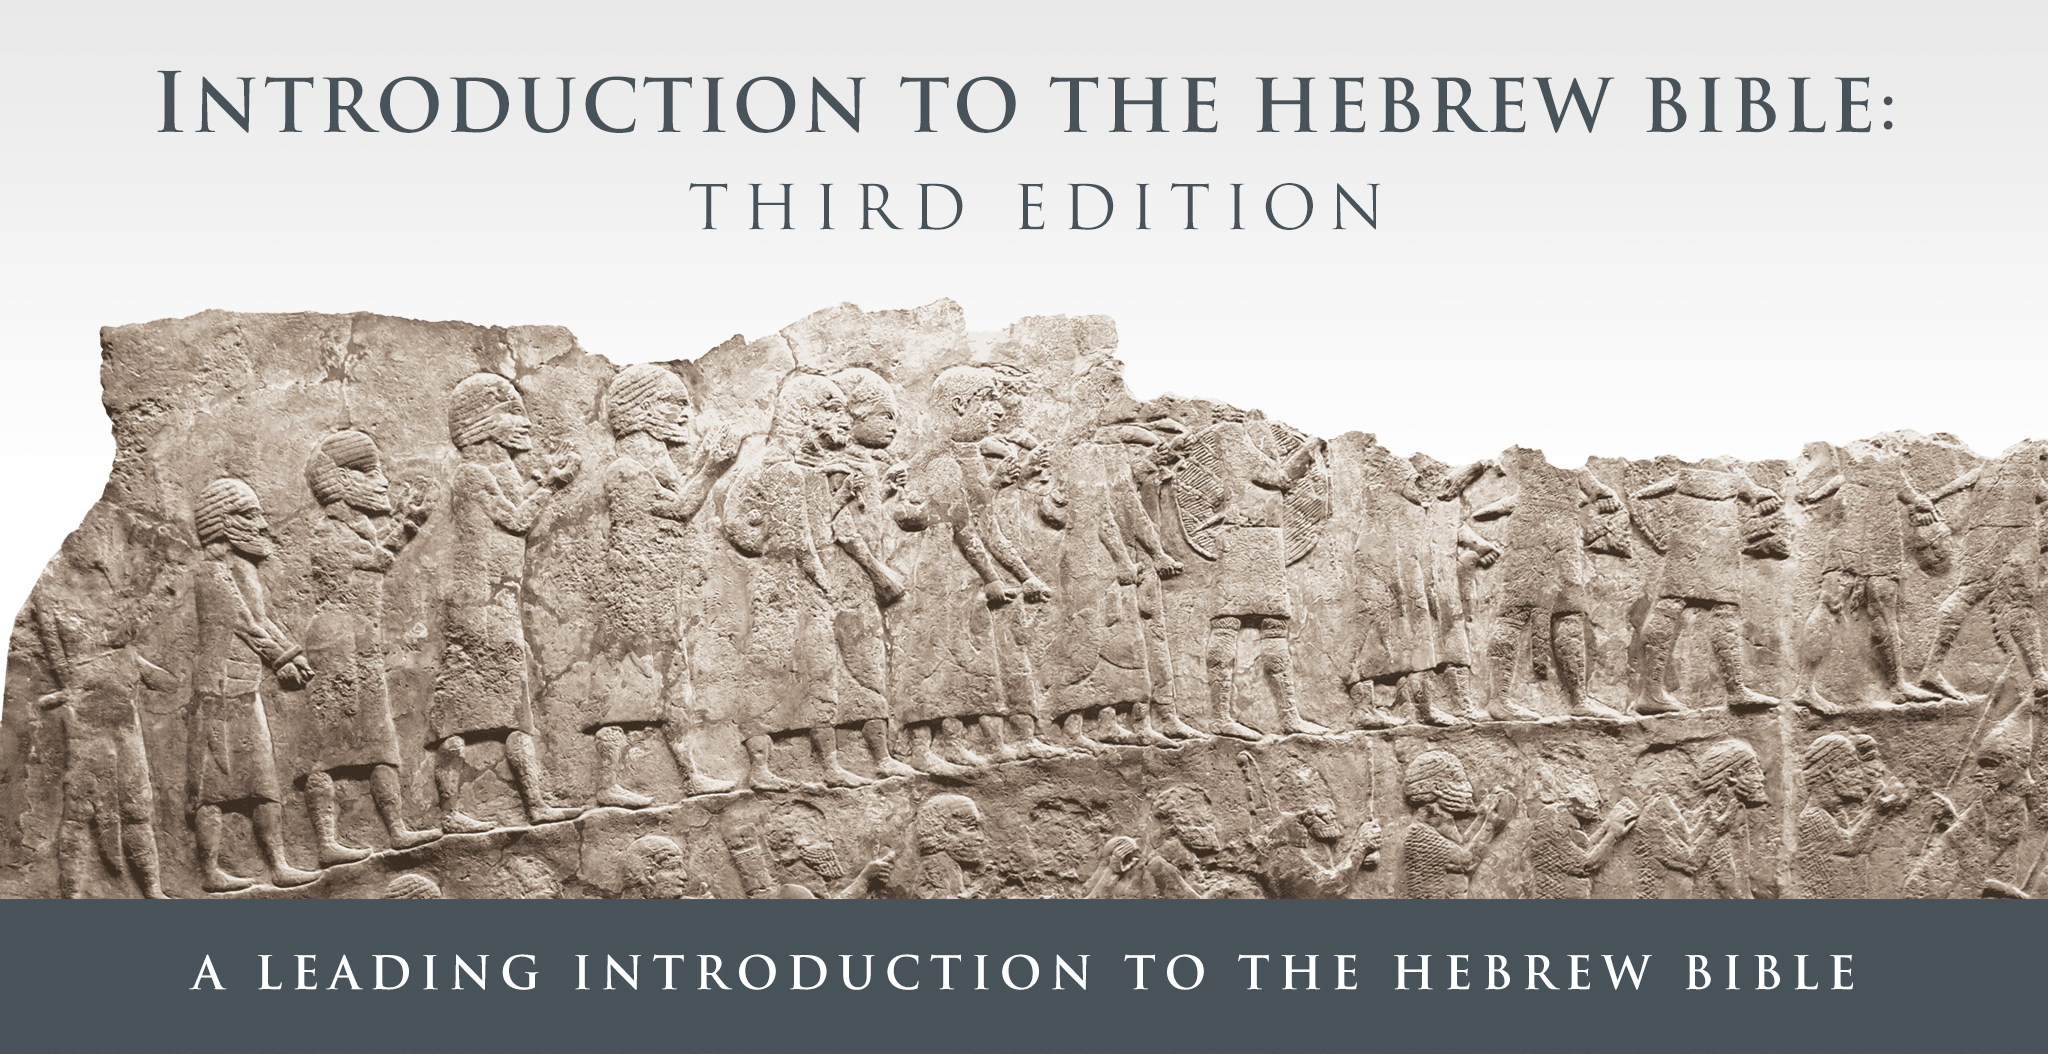 Introduction to the Hebrew Bible, Third Edition banner image